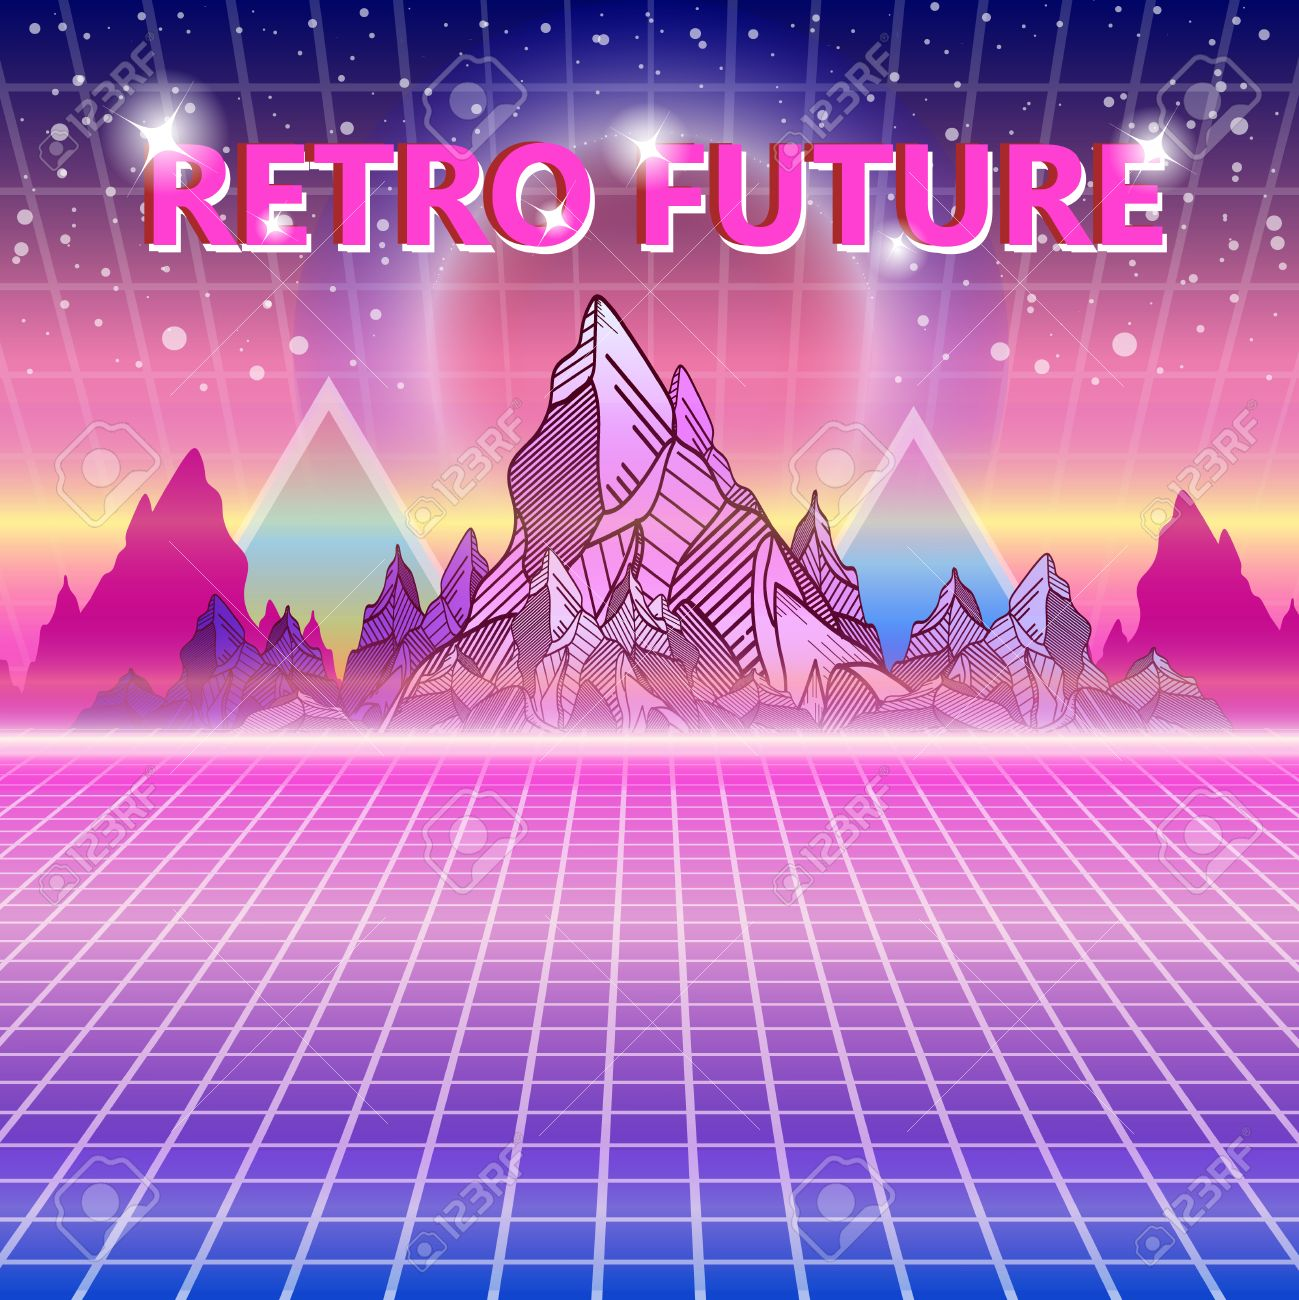 Retro Future 80s Style Sci Fi Background Wave Music Album Cover